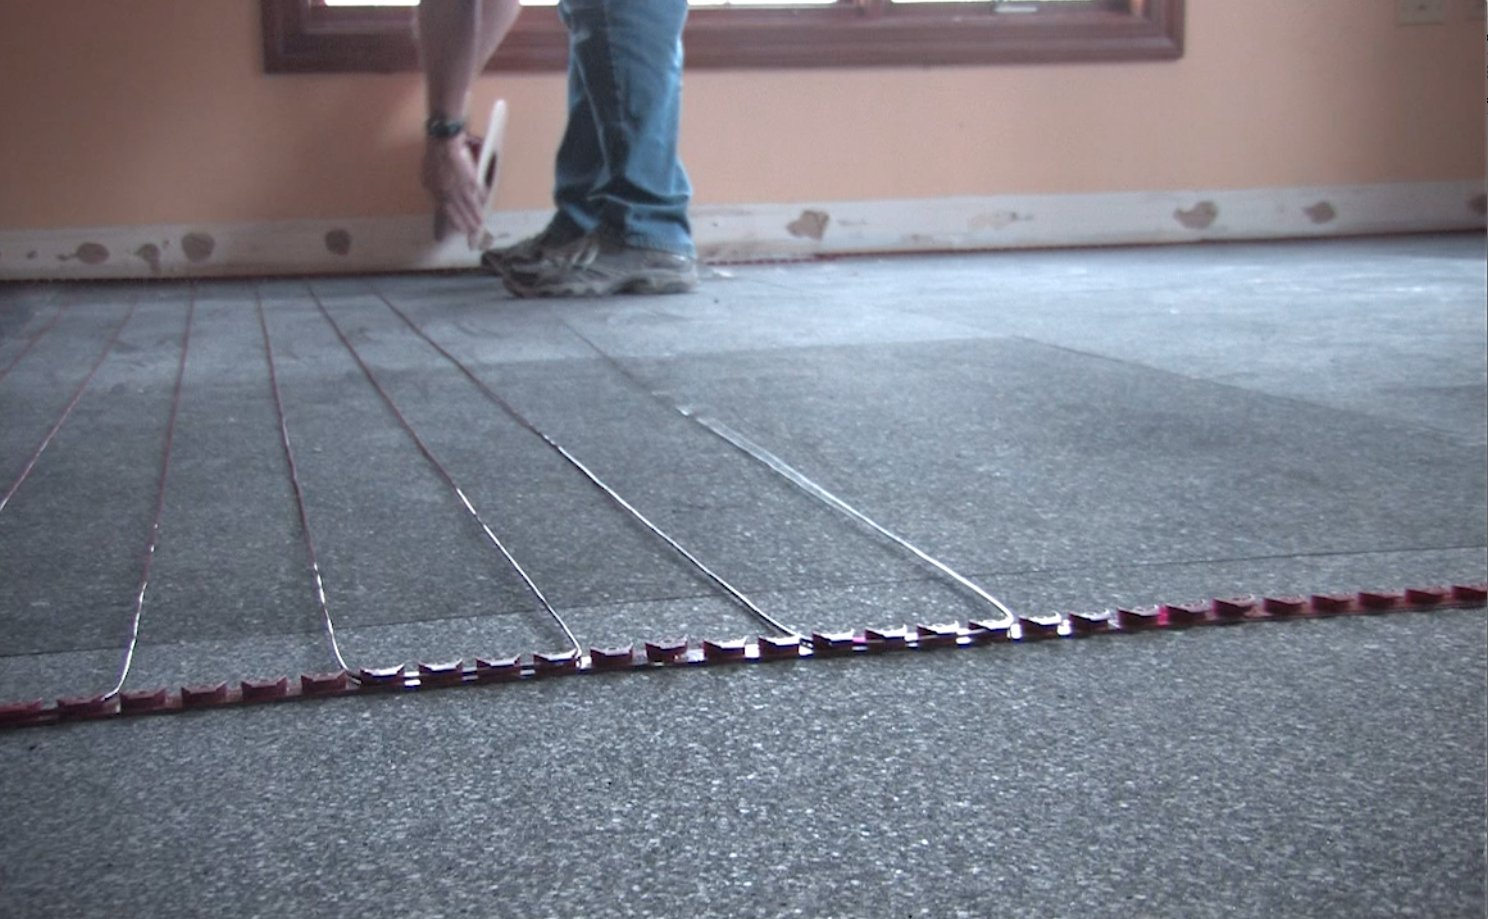 Floor Heating Tempzone Cable 120v 37w Ft 30 Carpet On Concrete Detail Under Wiring System 10a